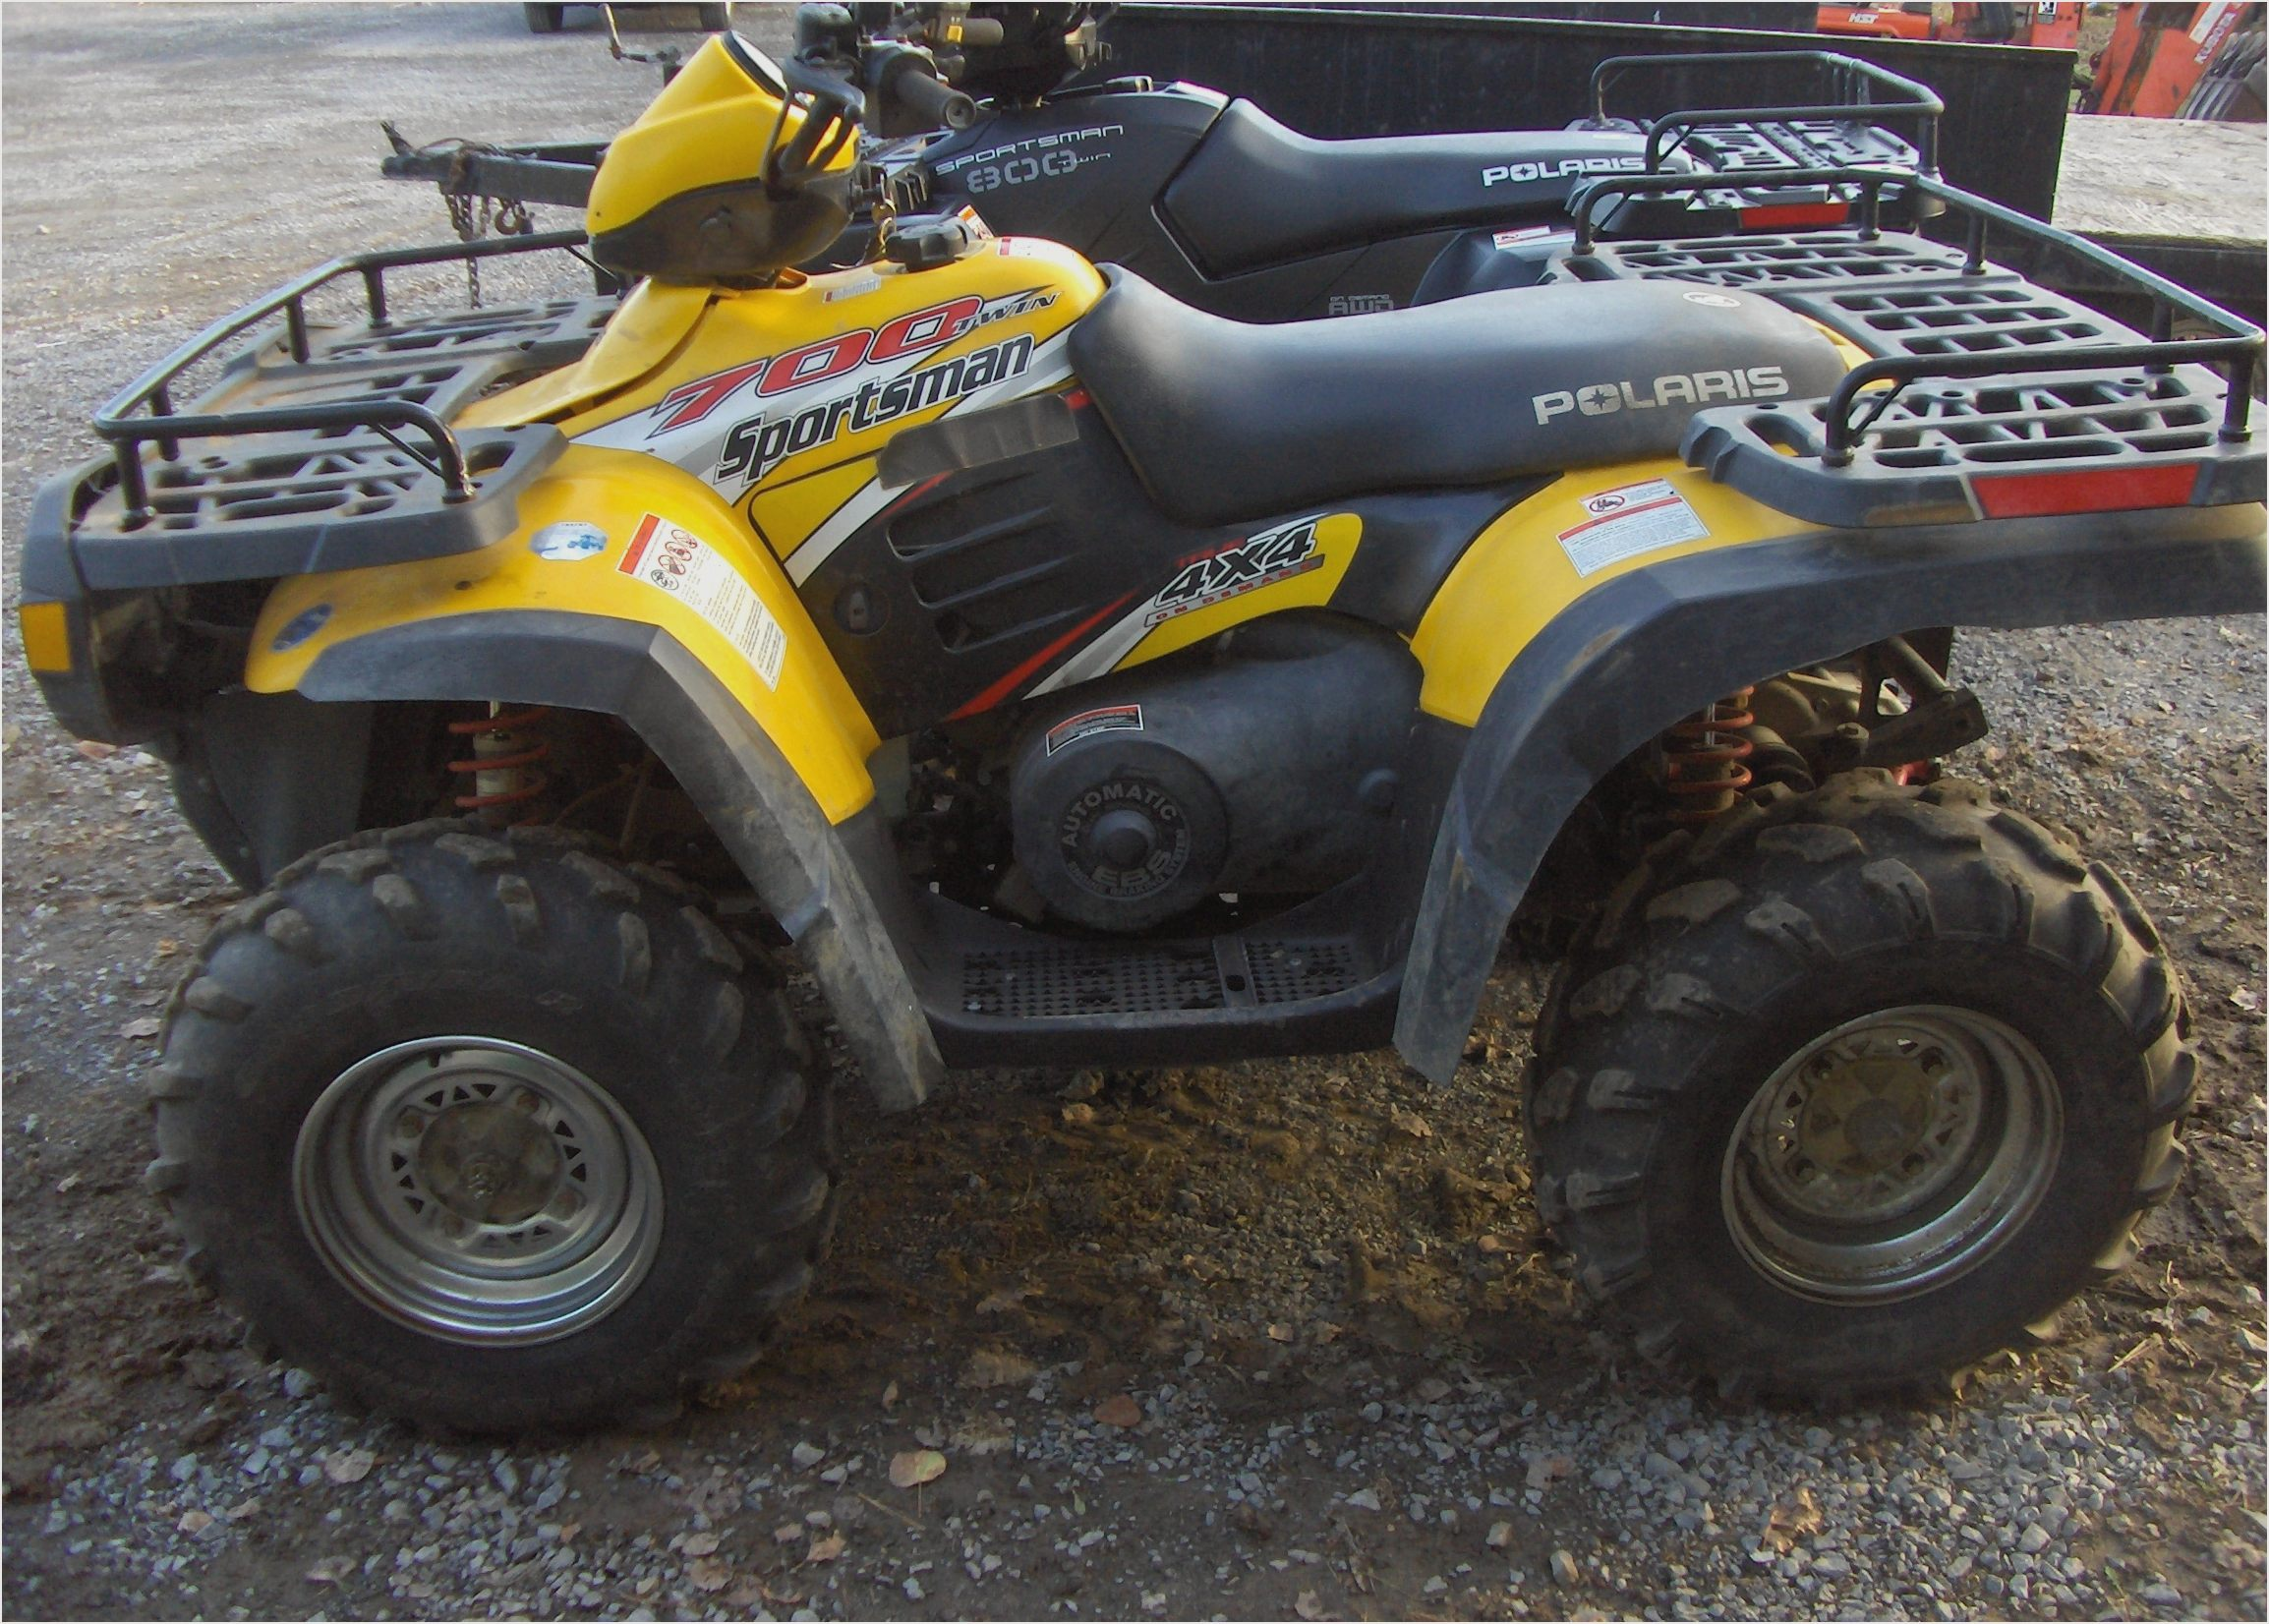 Polaris Sportsman 600 images #121109